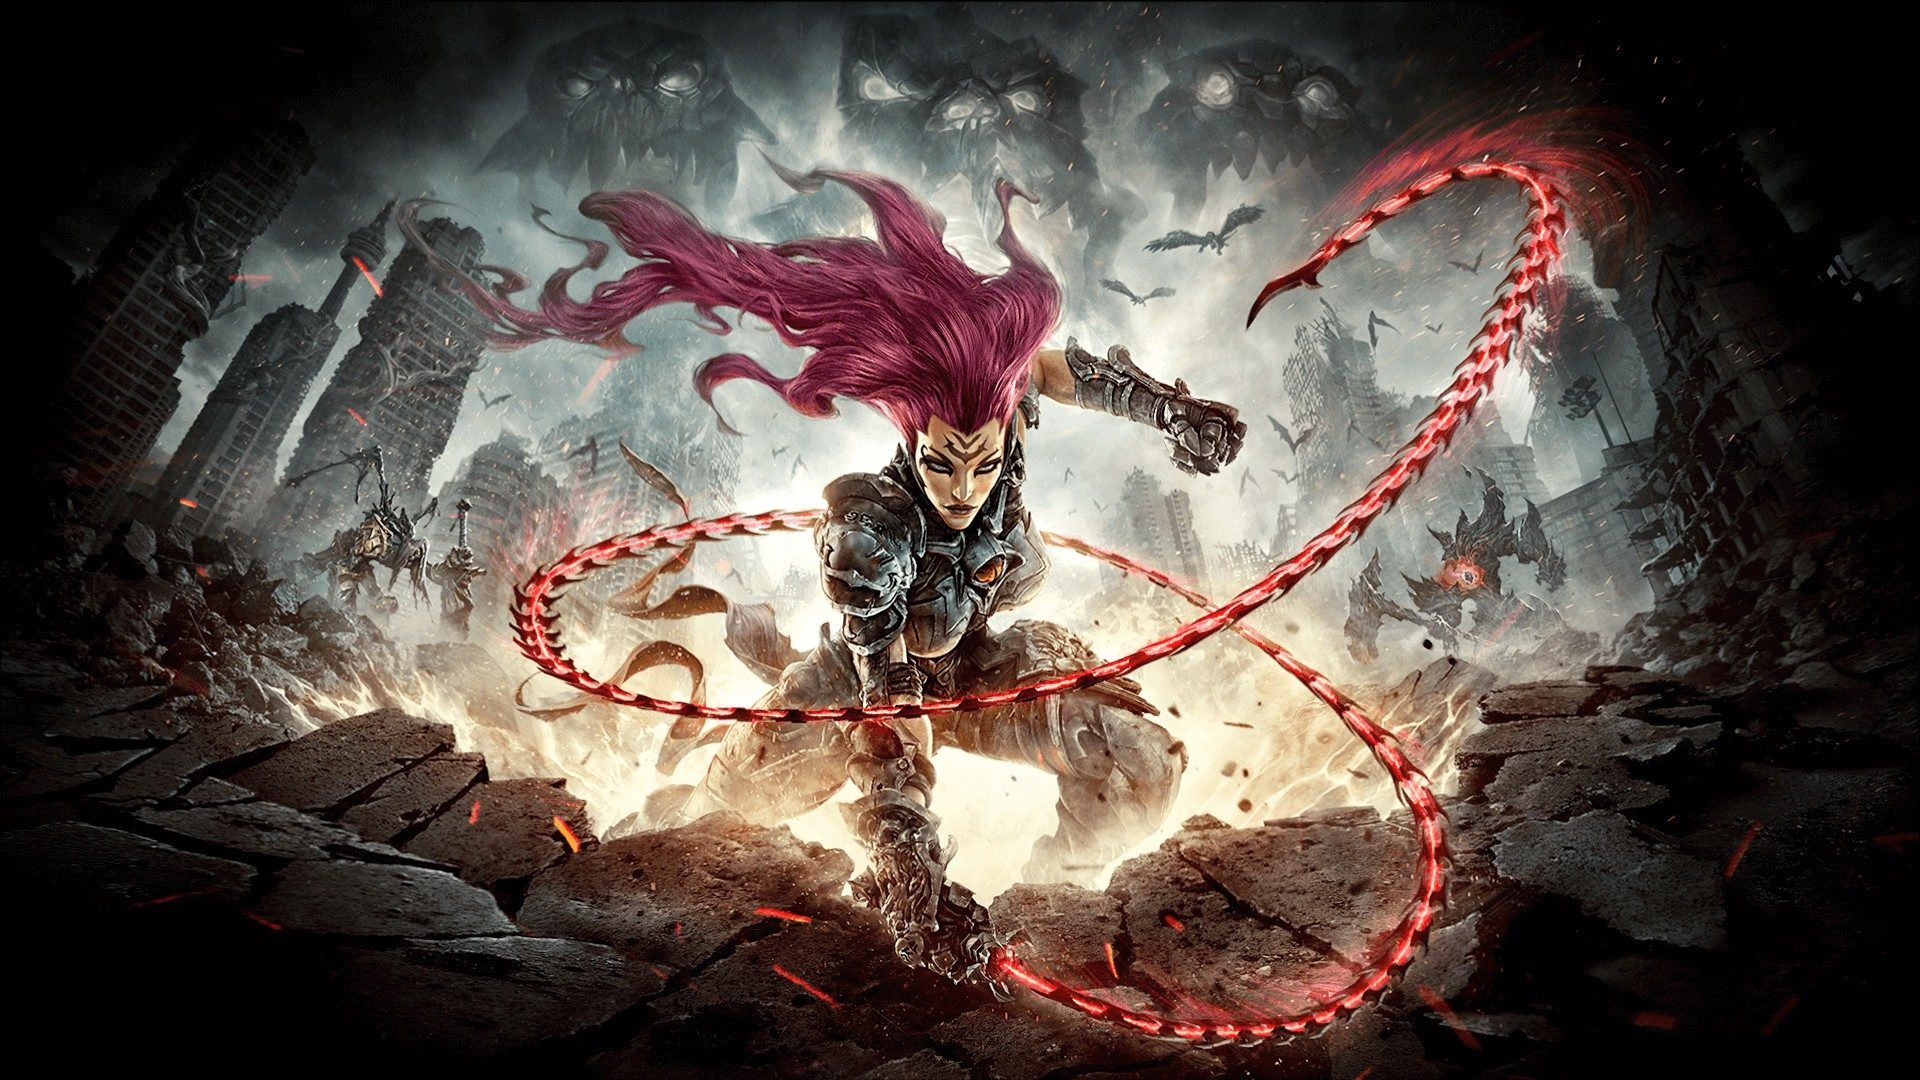 Darksiders 3 HD Wallpaper 72118 Wallpaper Download HD Wallpaper 1920x1080